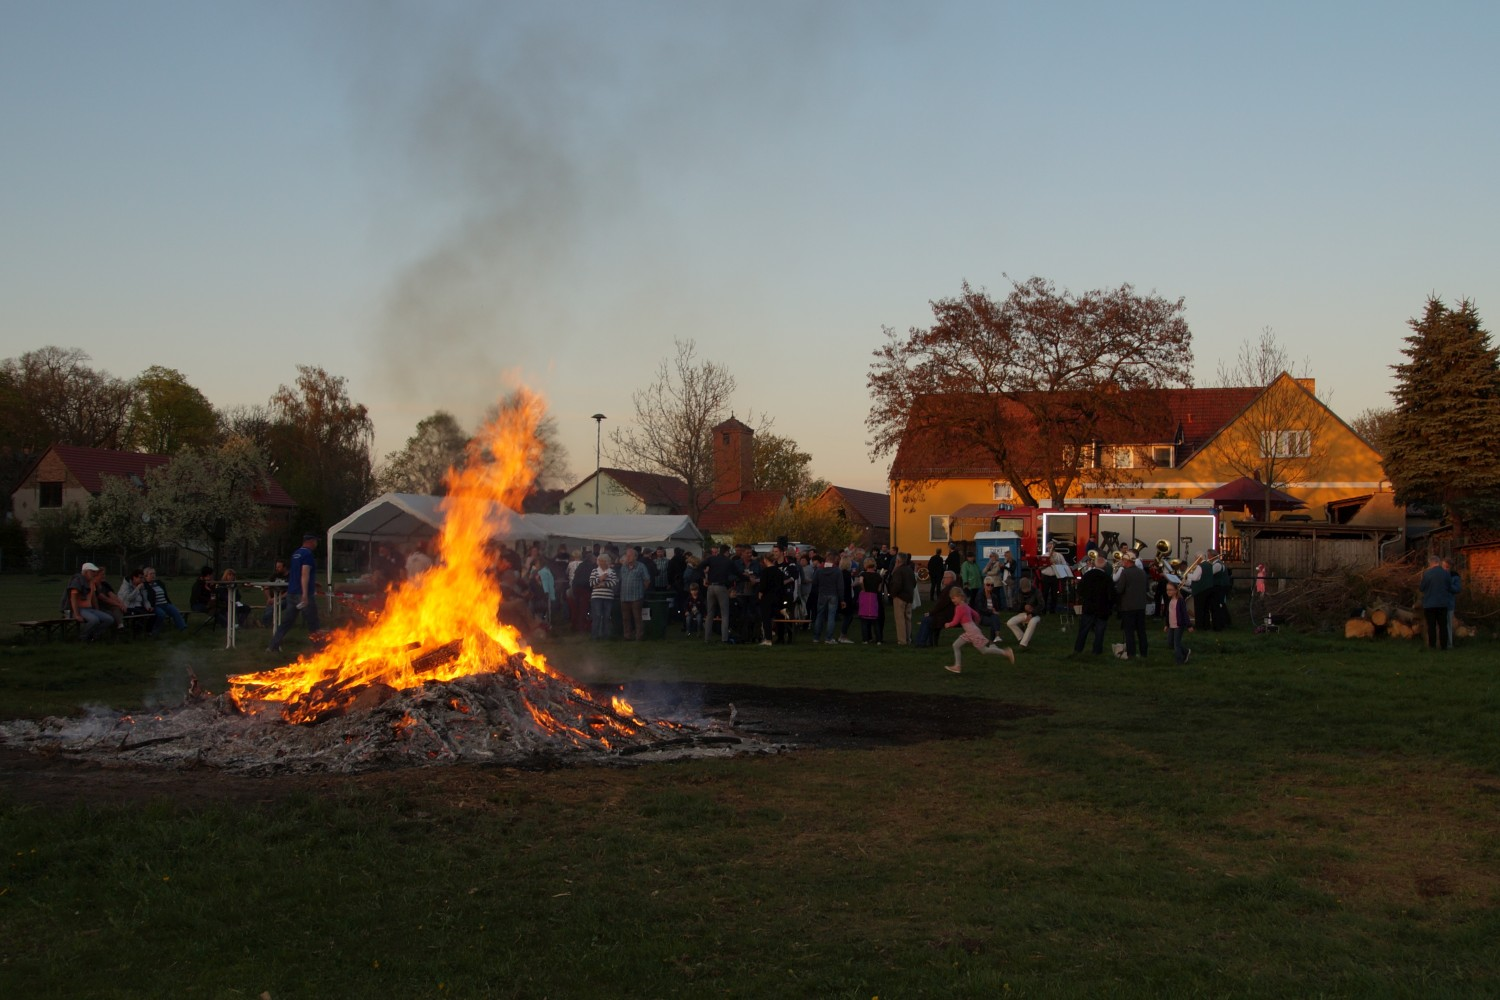 2019-04-20_Osterfeuer_16